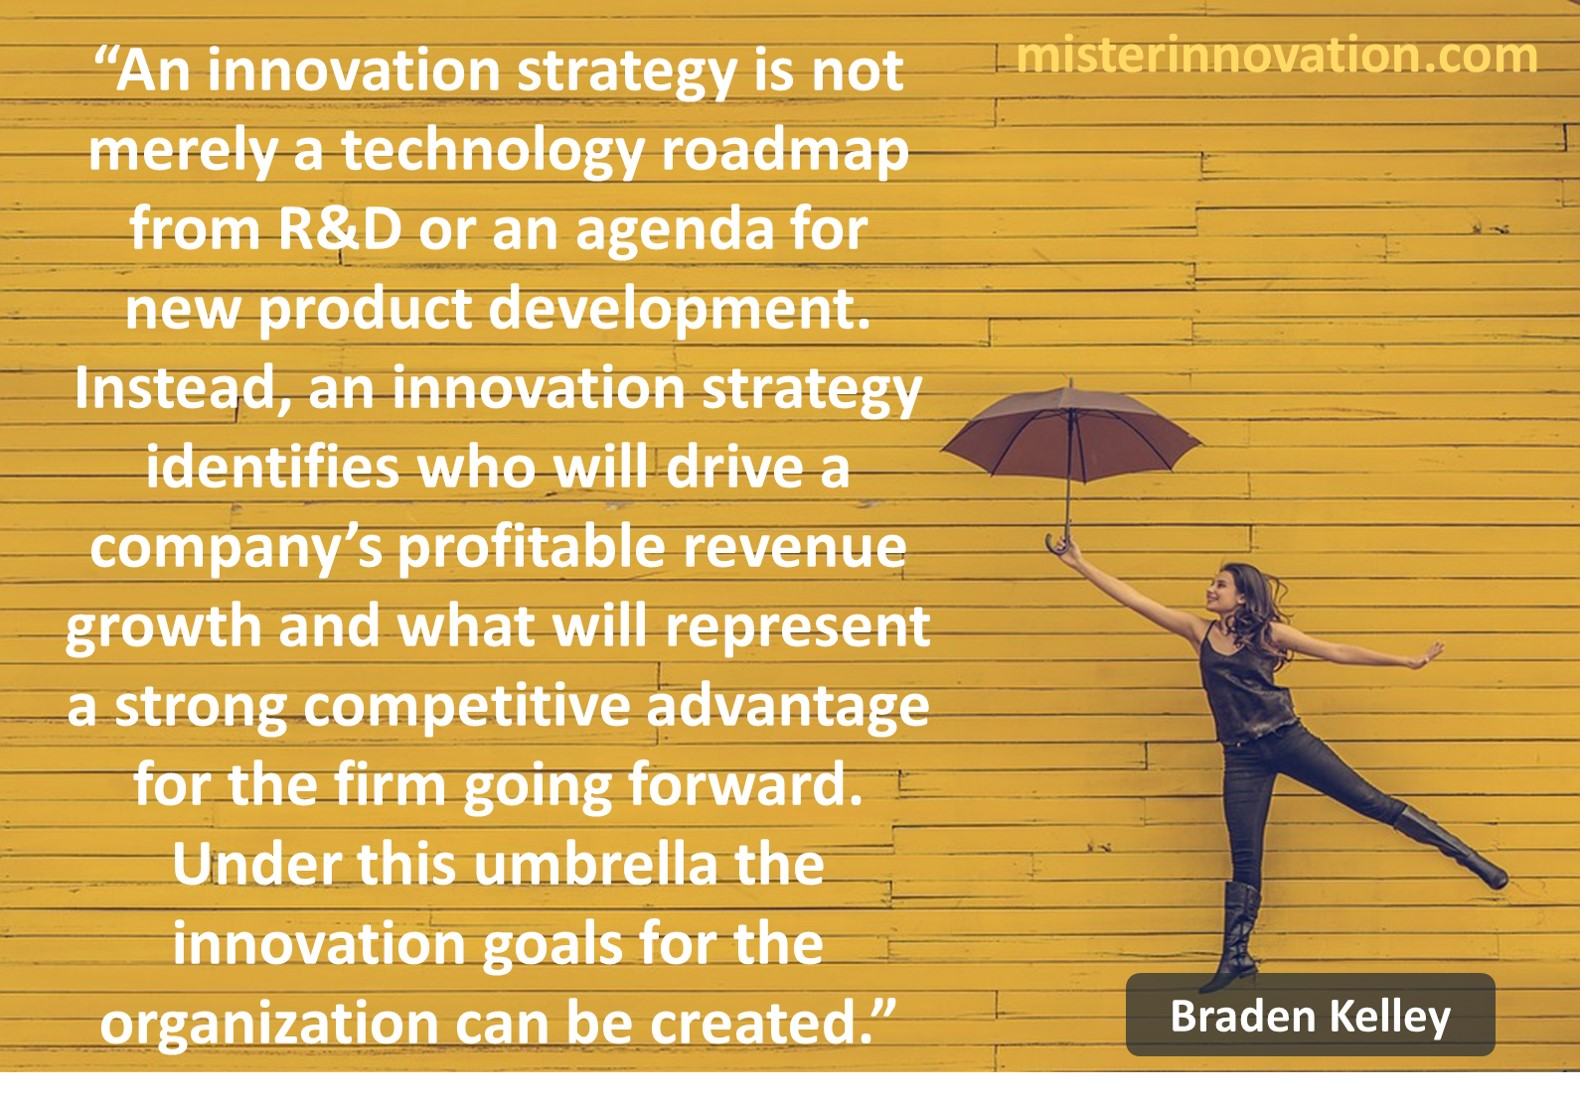 Innovation Strategy and Goals Quote from Braden Kelley